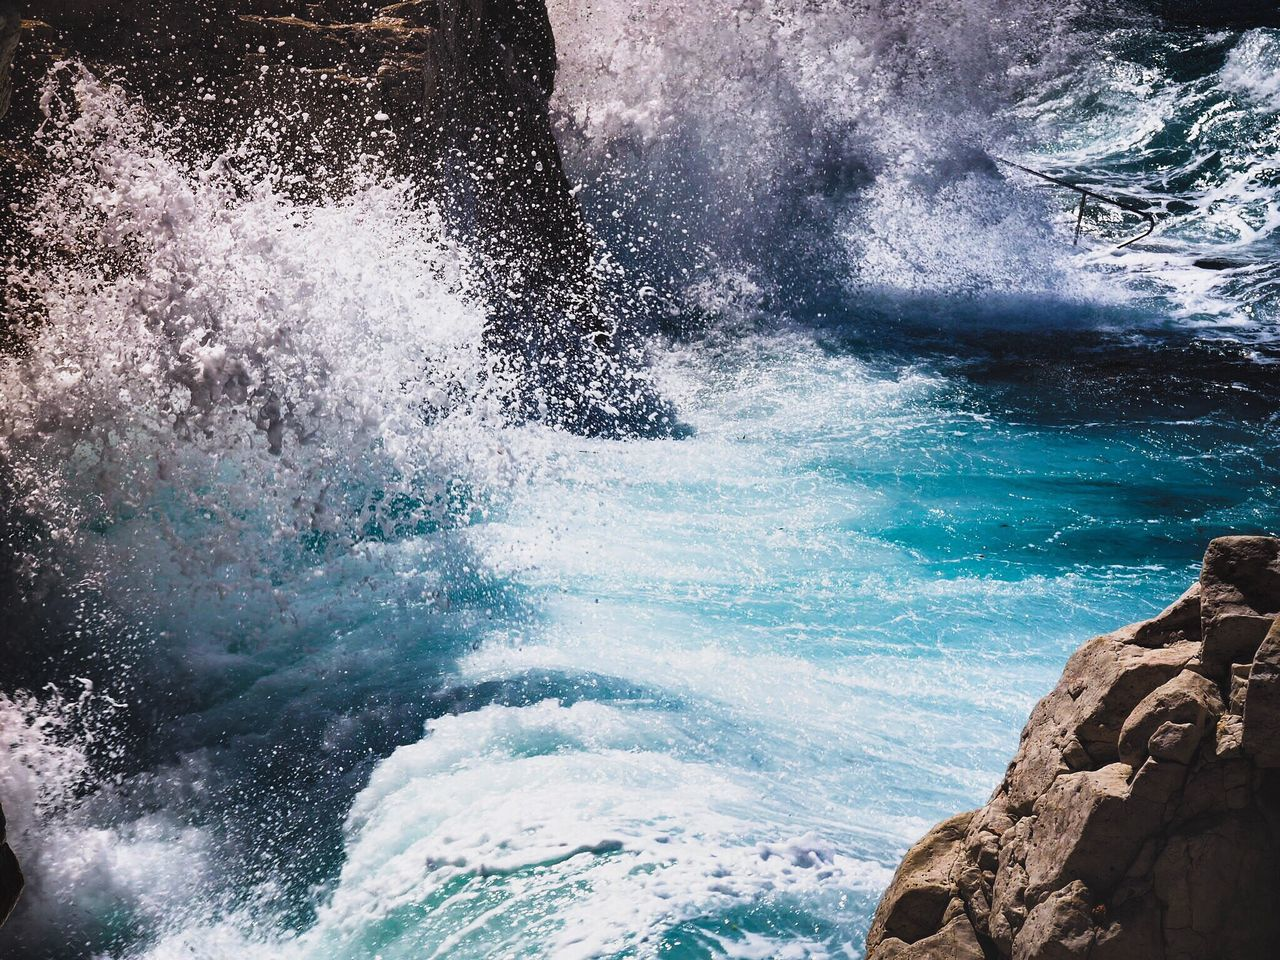 rock - object, water, nature, beauty in nature, motion, outdoors, day, sea, blue, no people, wave, force